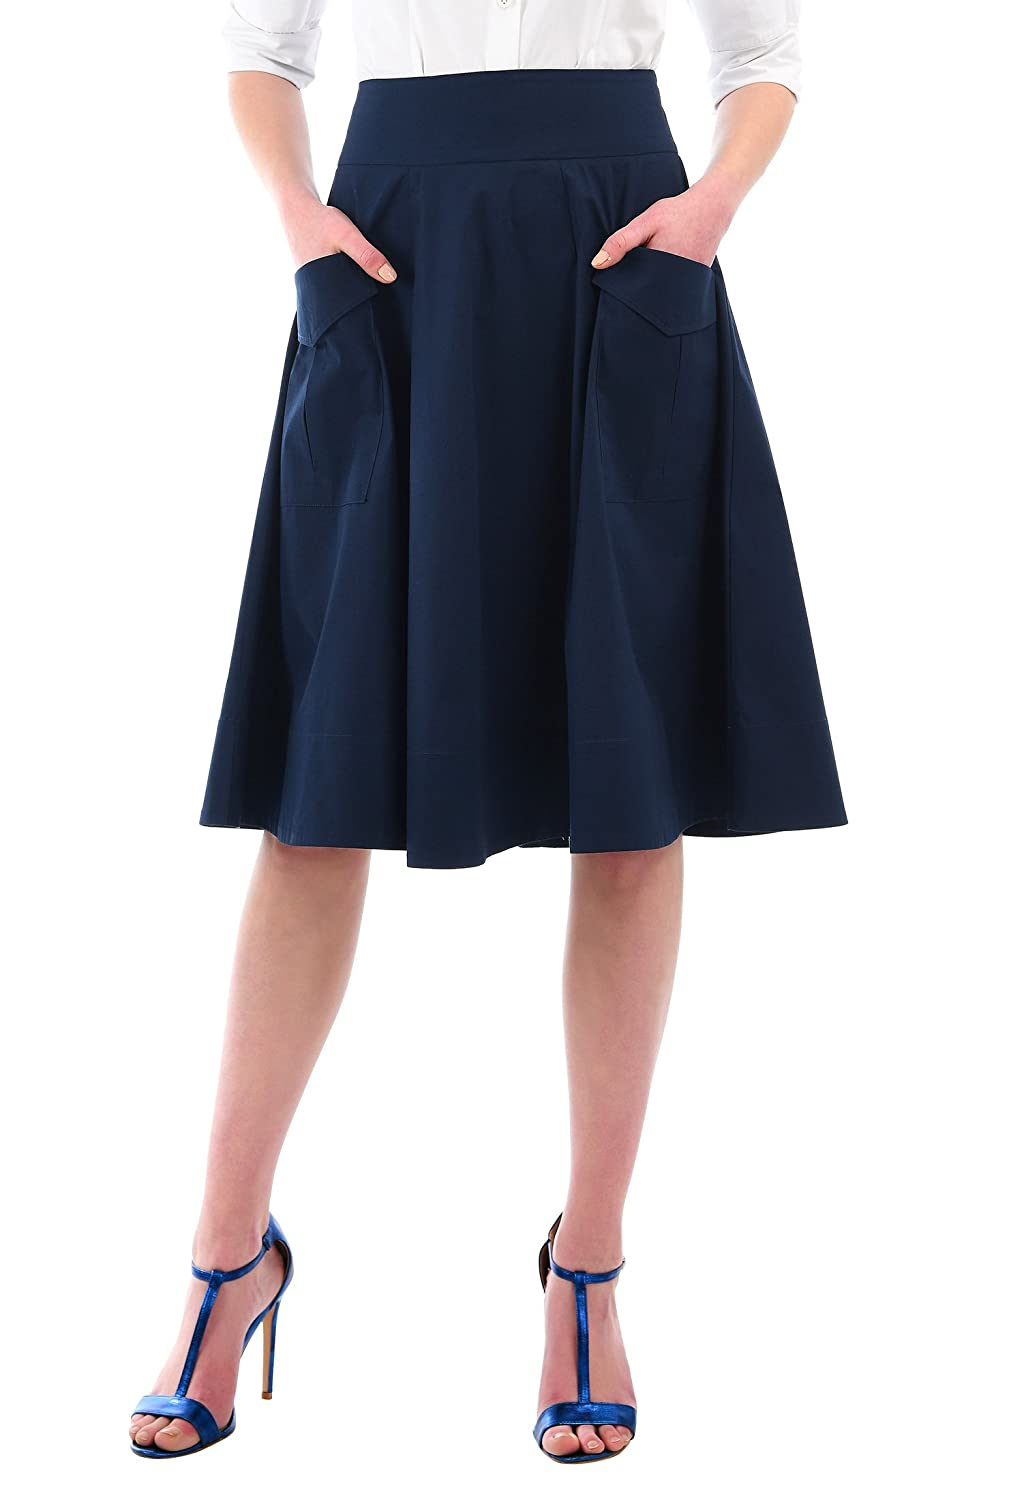 1950s Swing Skirt, Poodle Skirt, Pencil Skirts eShakti Womens Cargo Pocket Cotton Poplin Skirt $39.95 AT vintagedancer.com